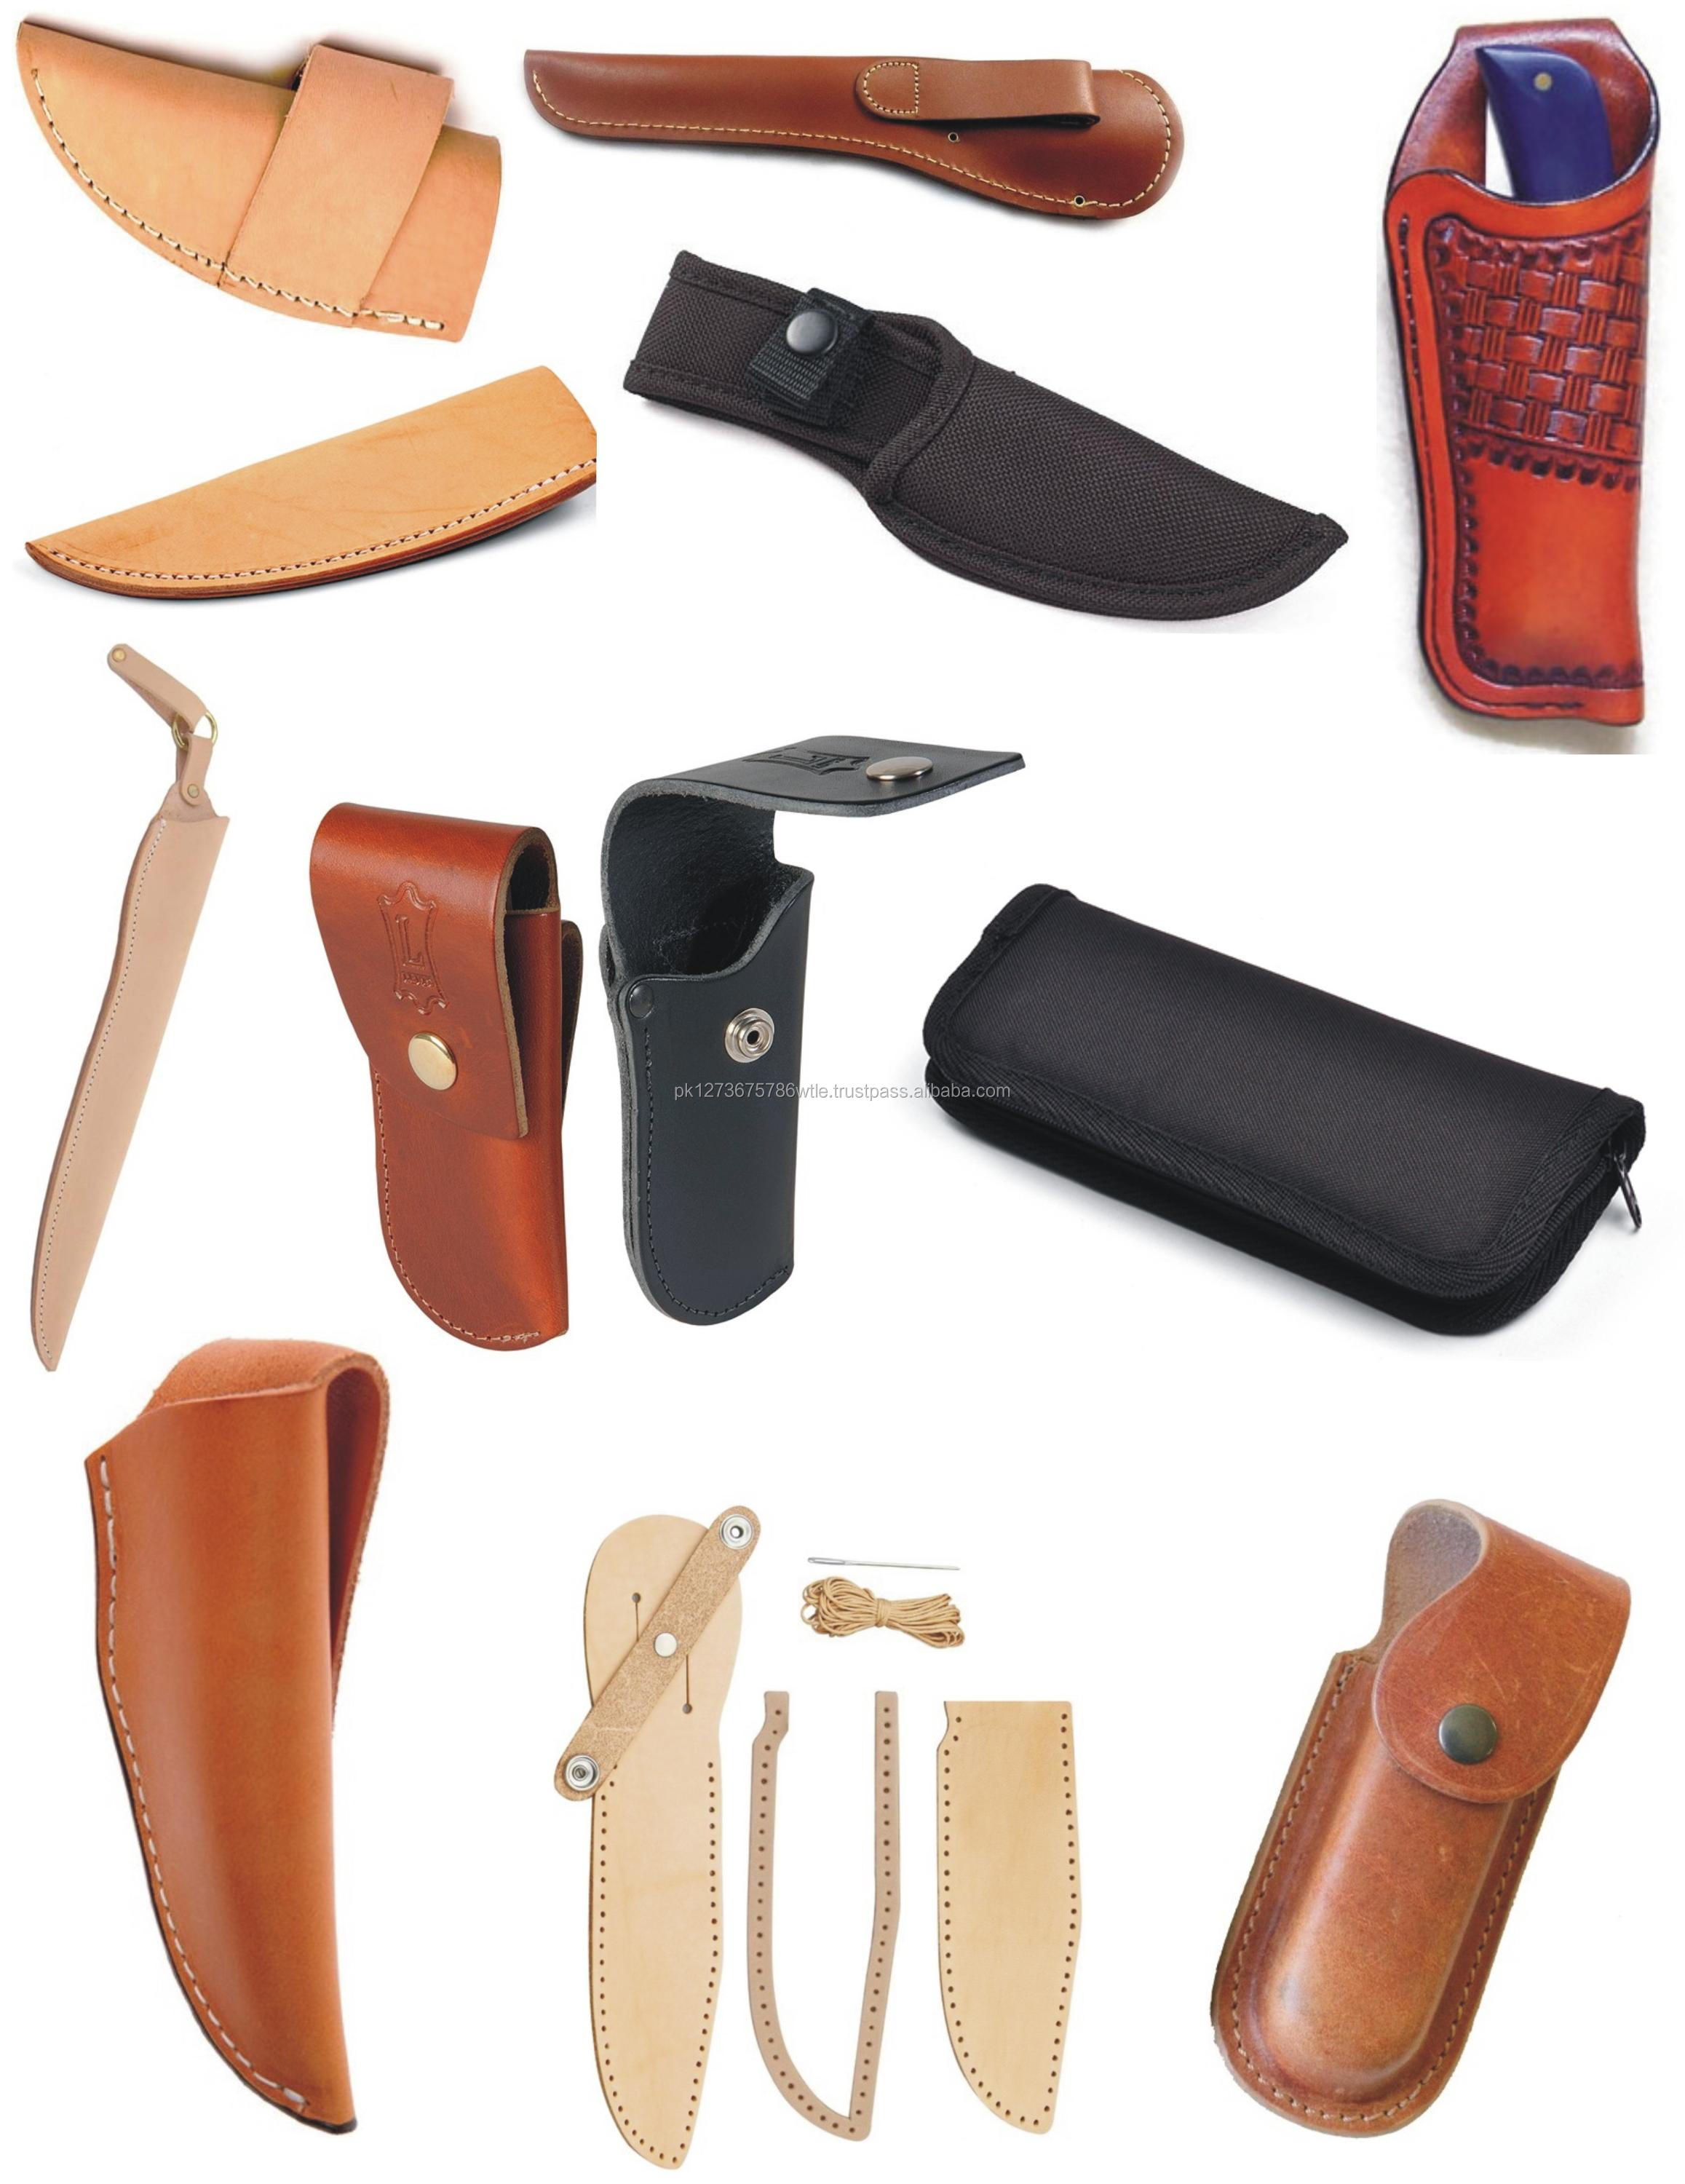 CUSTOM MADE HIGH QUALITY LEATHER HAND MADE KNIFE SHEATHS AND CASE